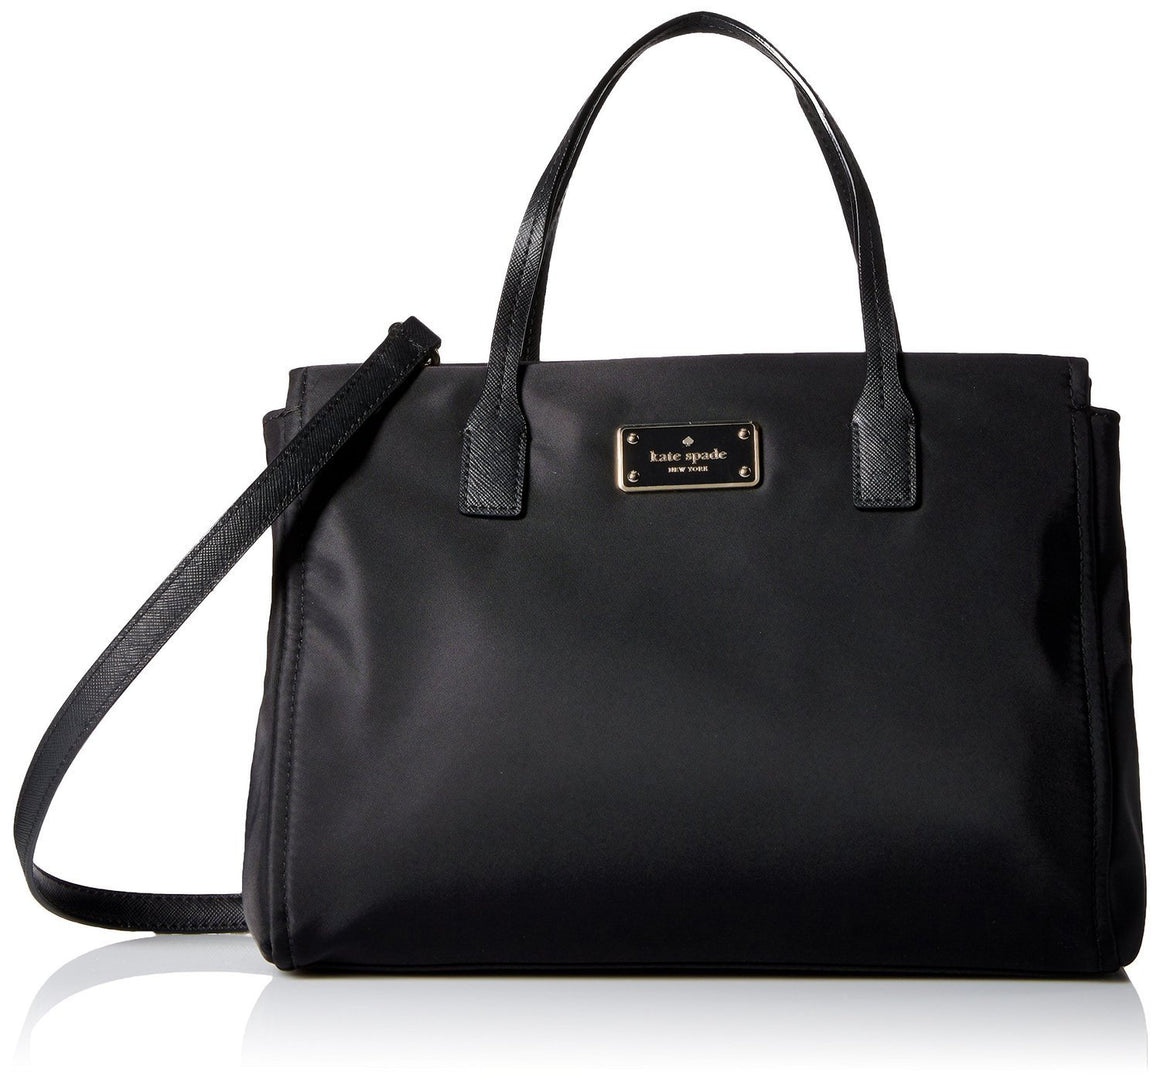 Kate Spade WKRU3529 Blake Avenue Small Loden Handbag Tote Wkru3529 Womens Handbags Kate Spade